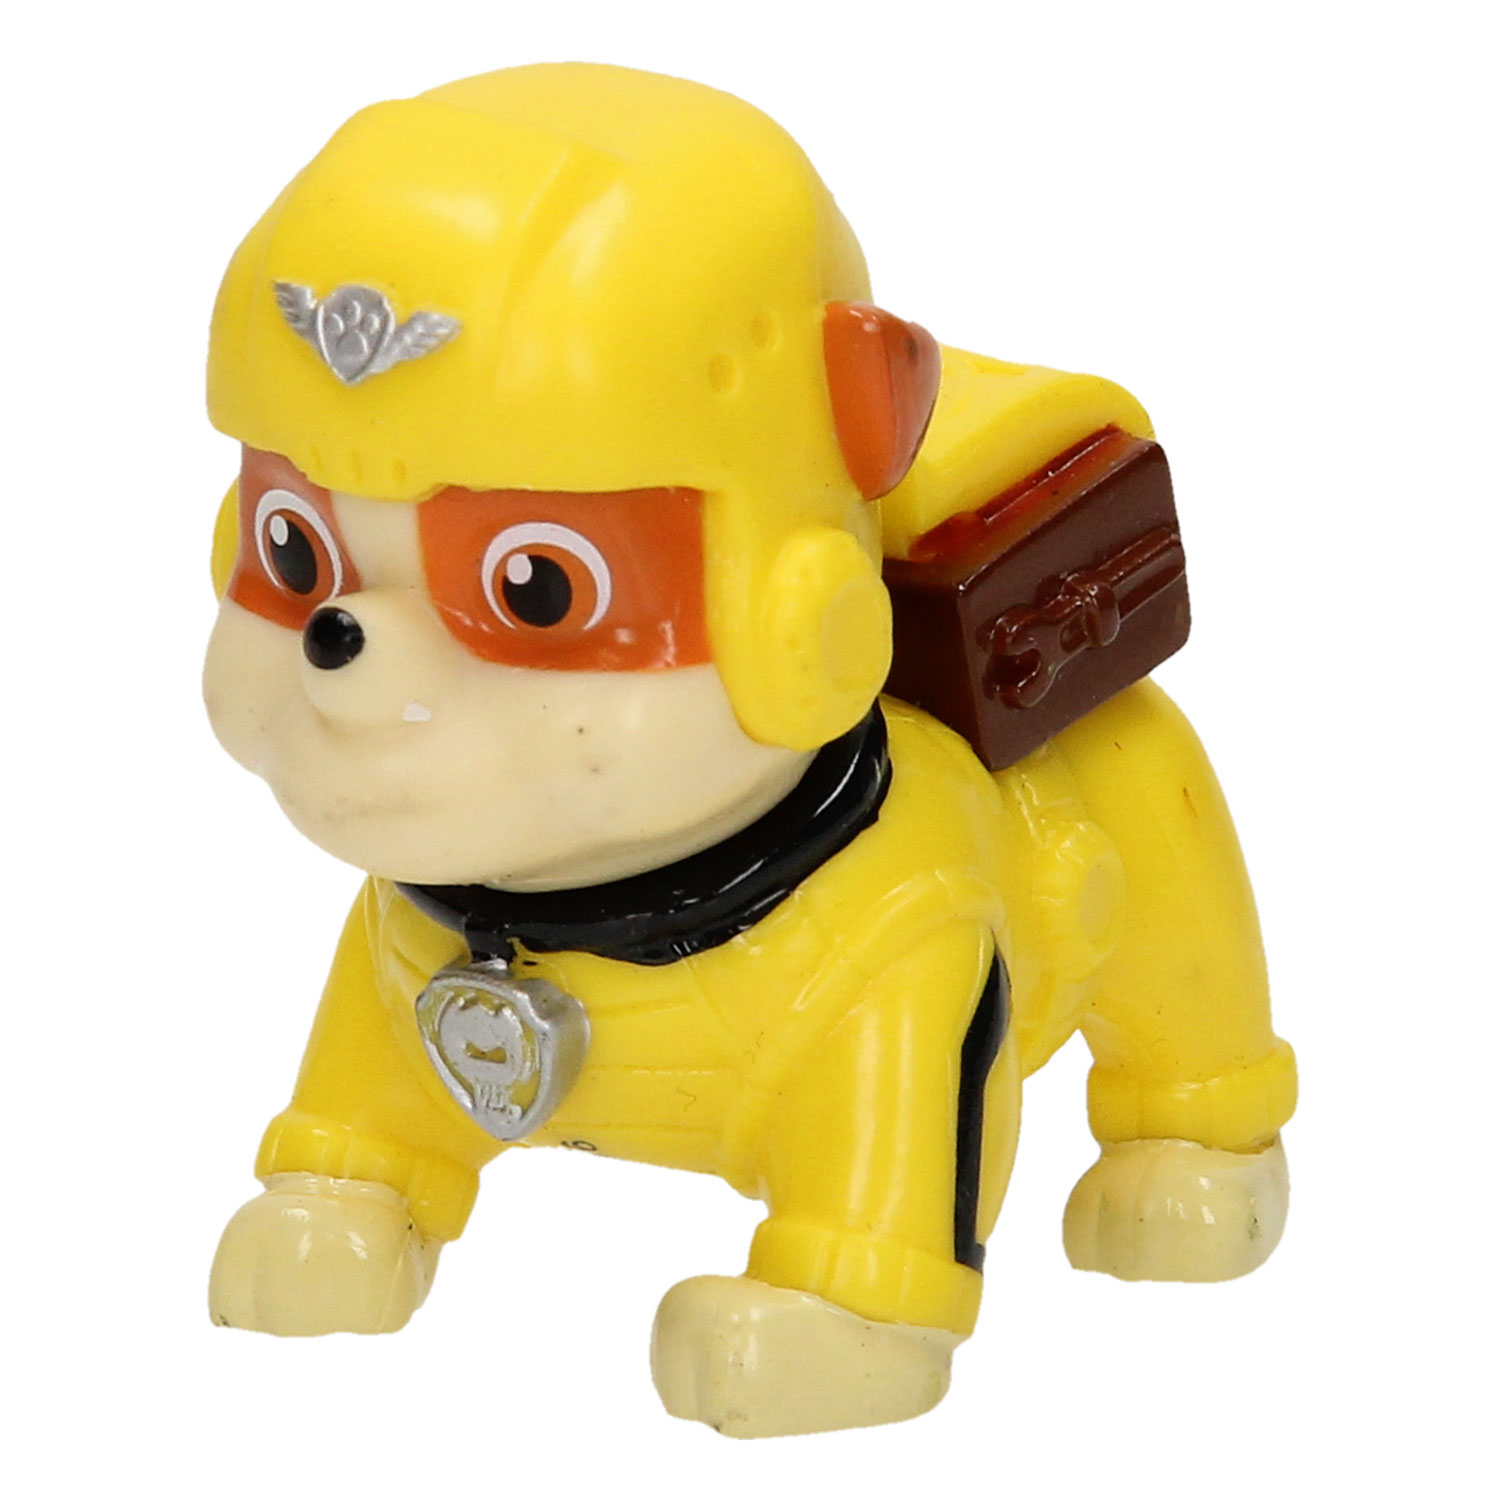 Paw Patrol Mini Speelfiguur - Rubble